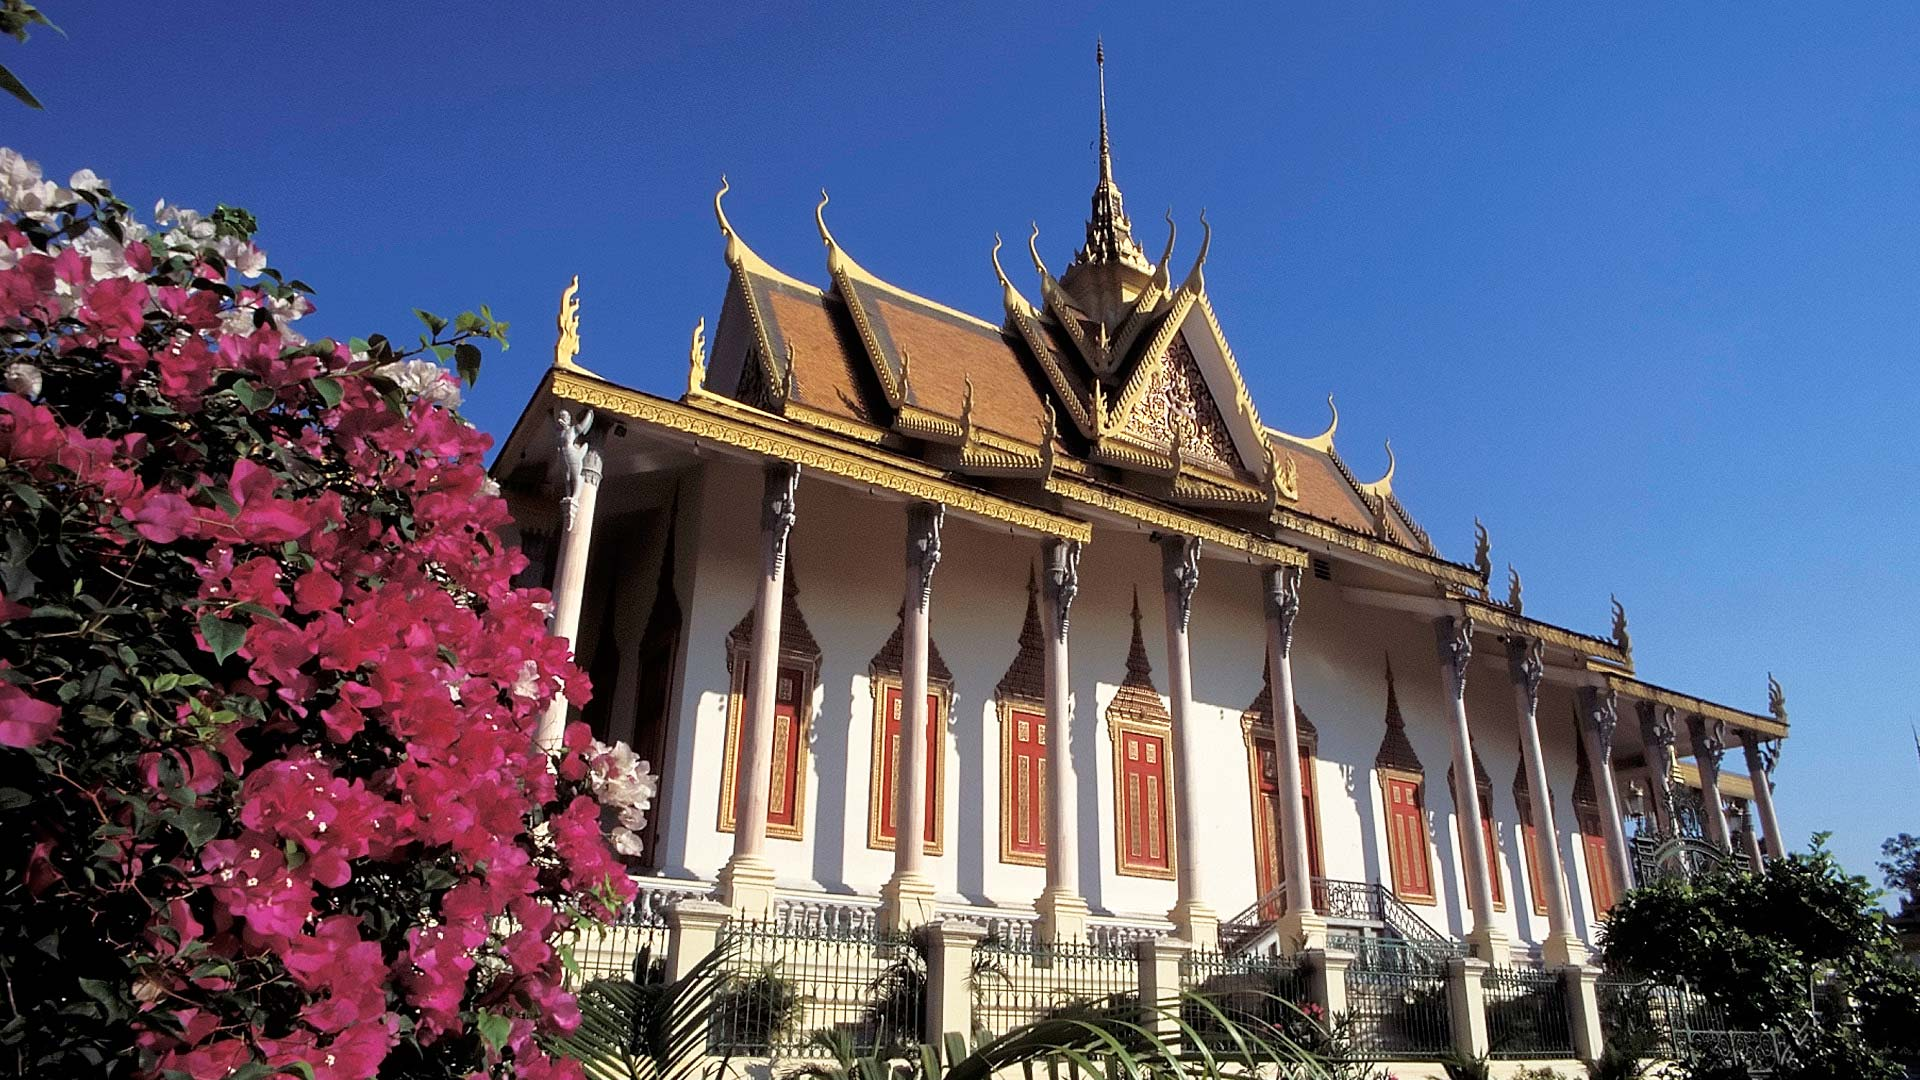 Silver Pagoda at the Royal Palace, Phnom Penh, Cambodia